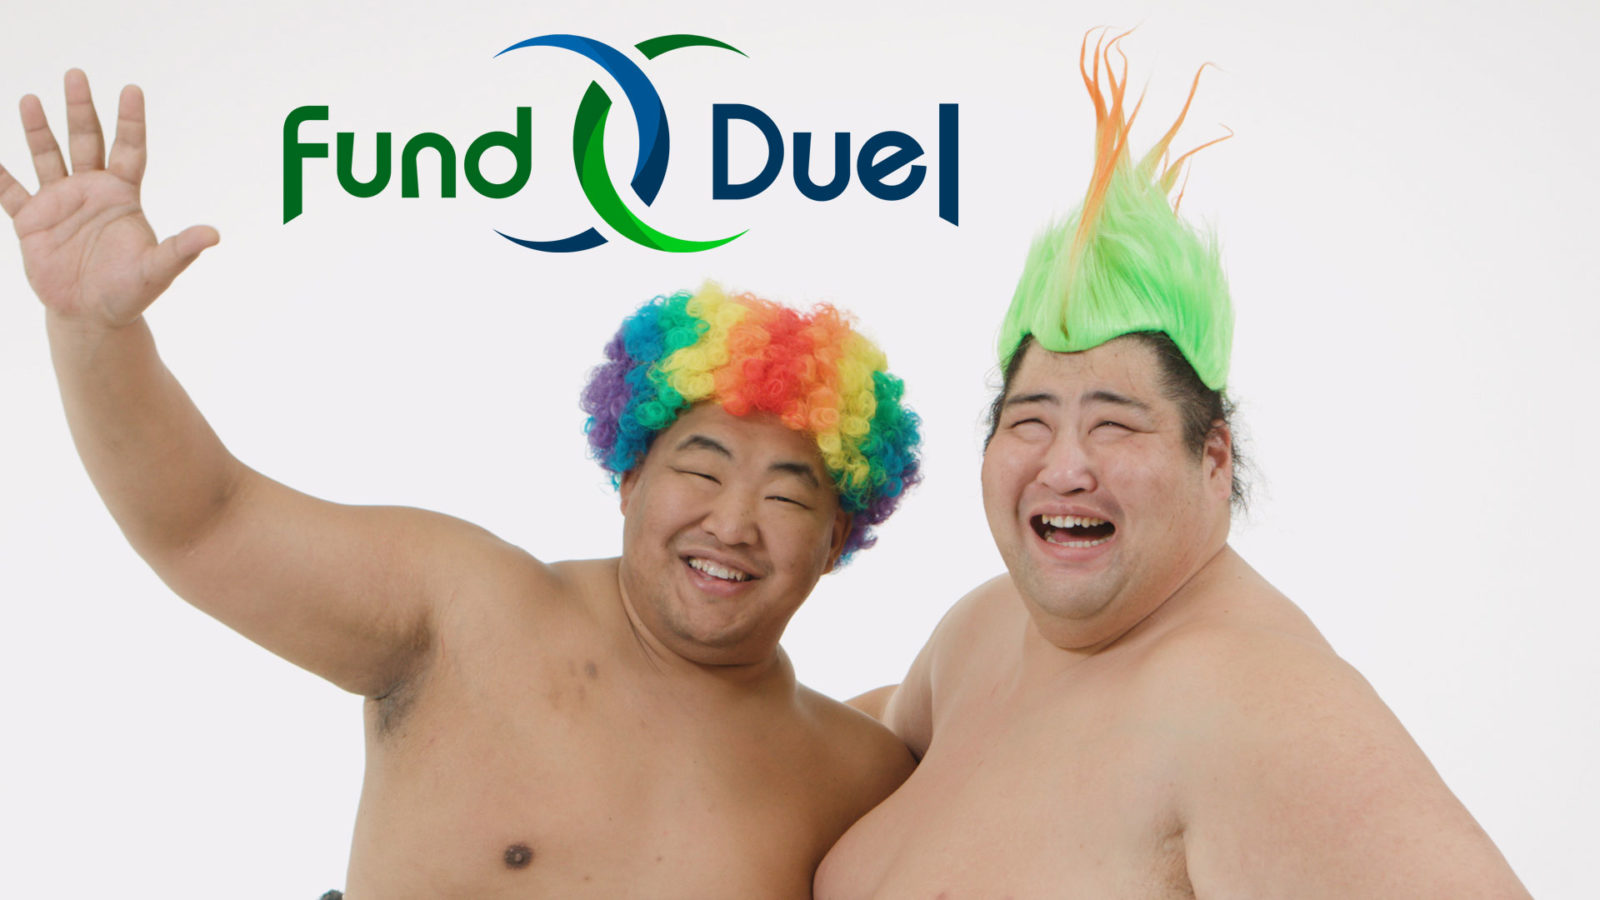 Fund Duel: Putting the Fun Back in Fundraising (1 min)